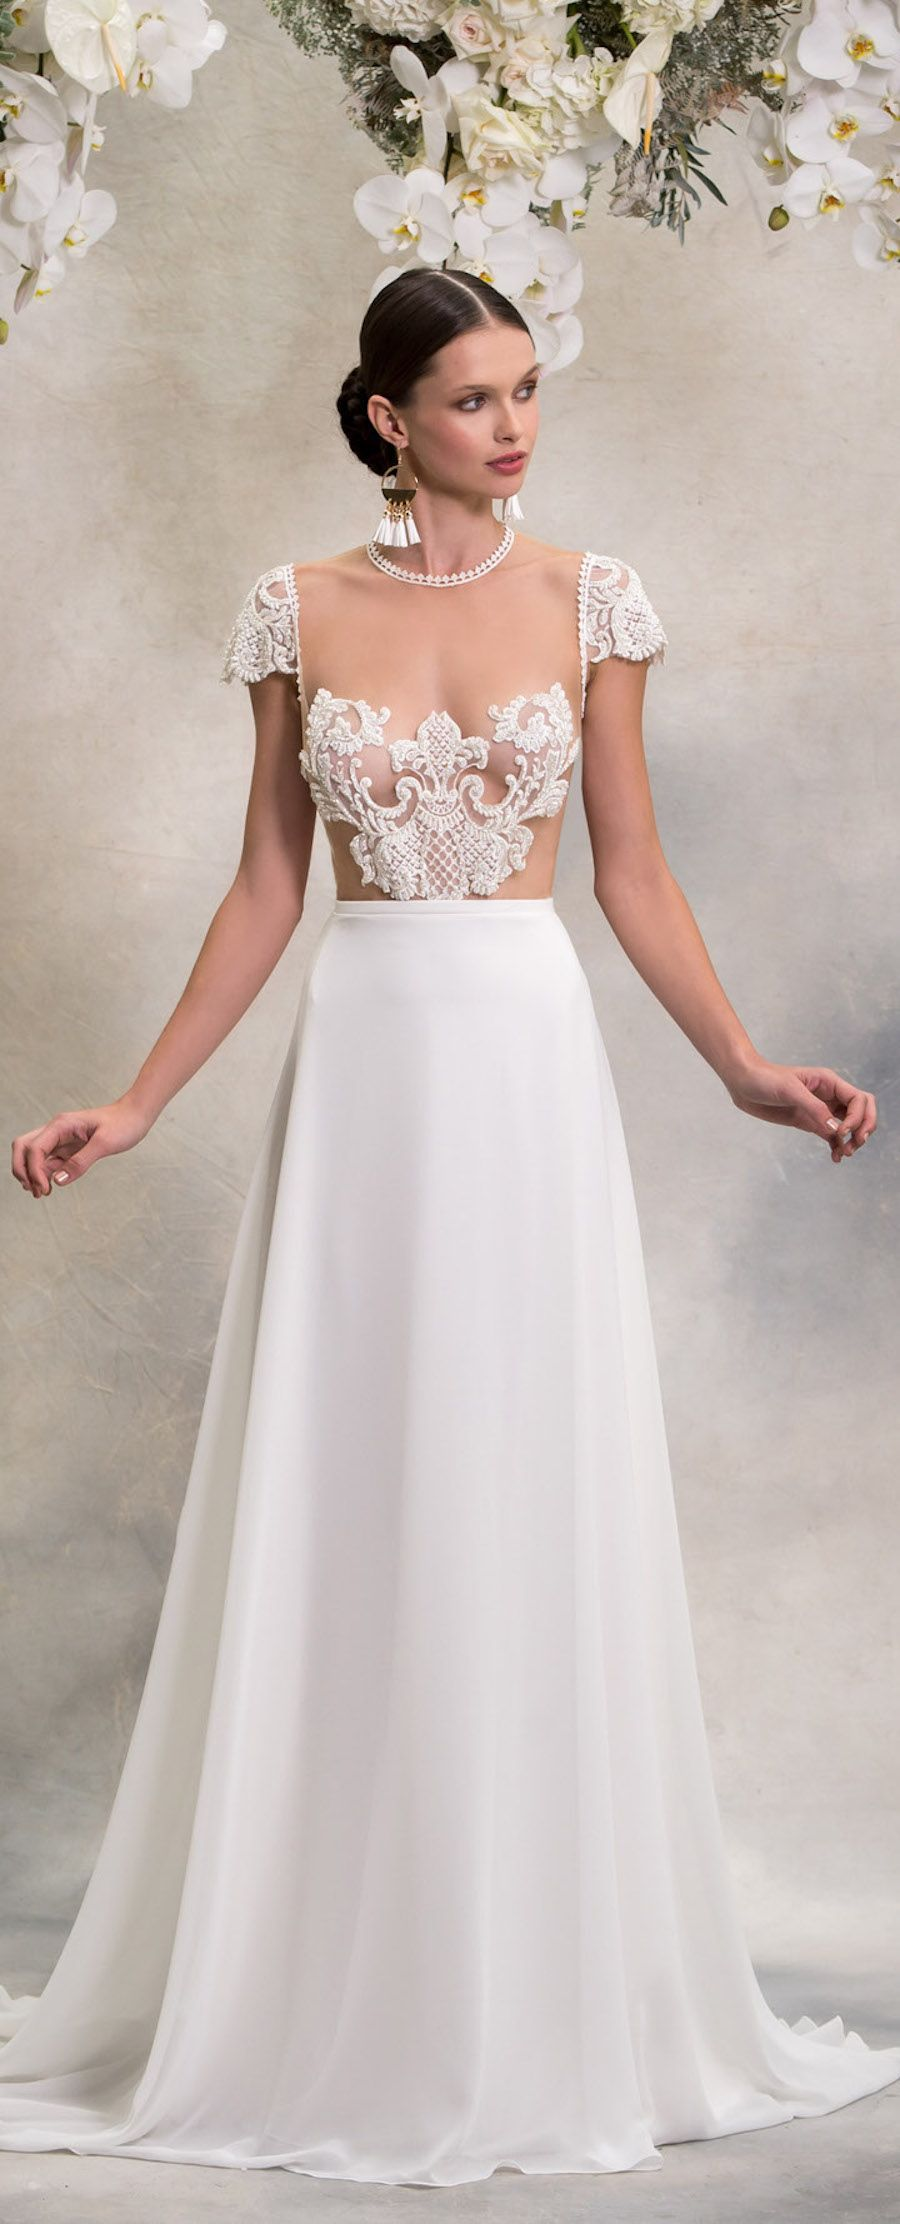 Anna georgina wedding dress anna wedding dress and weddings